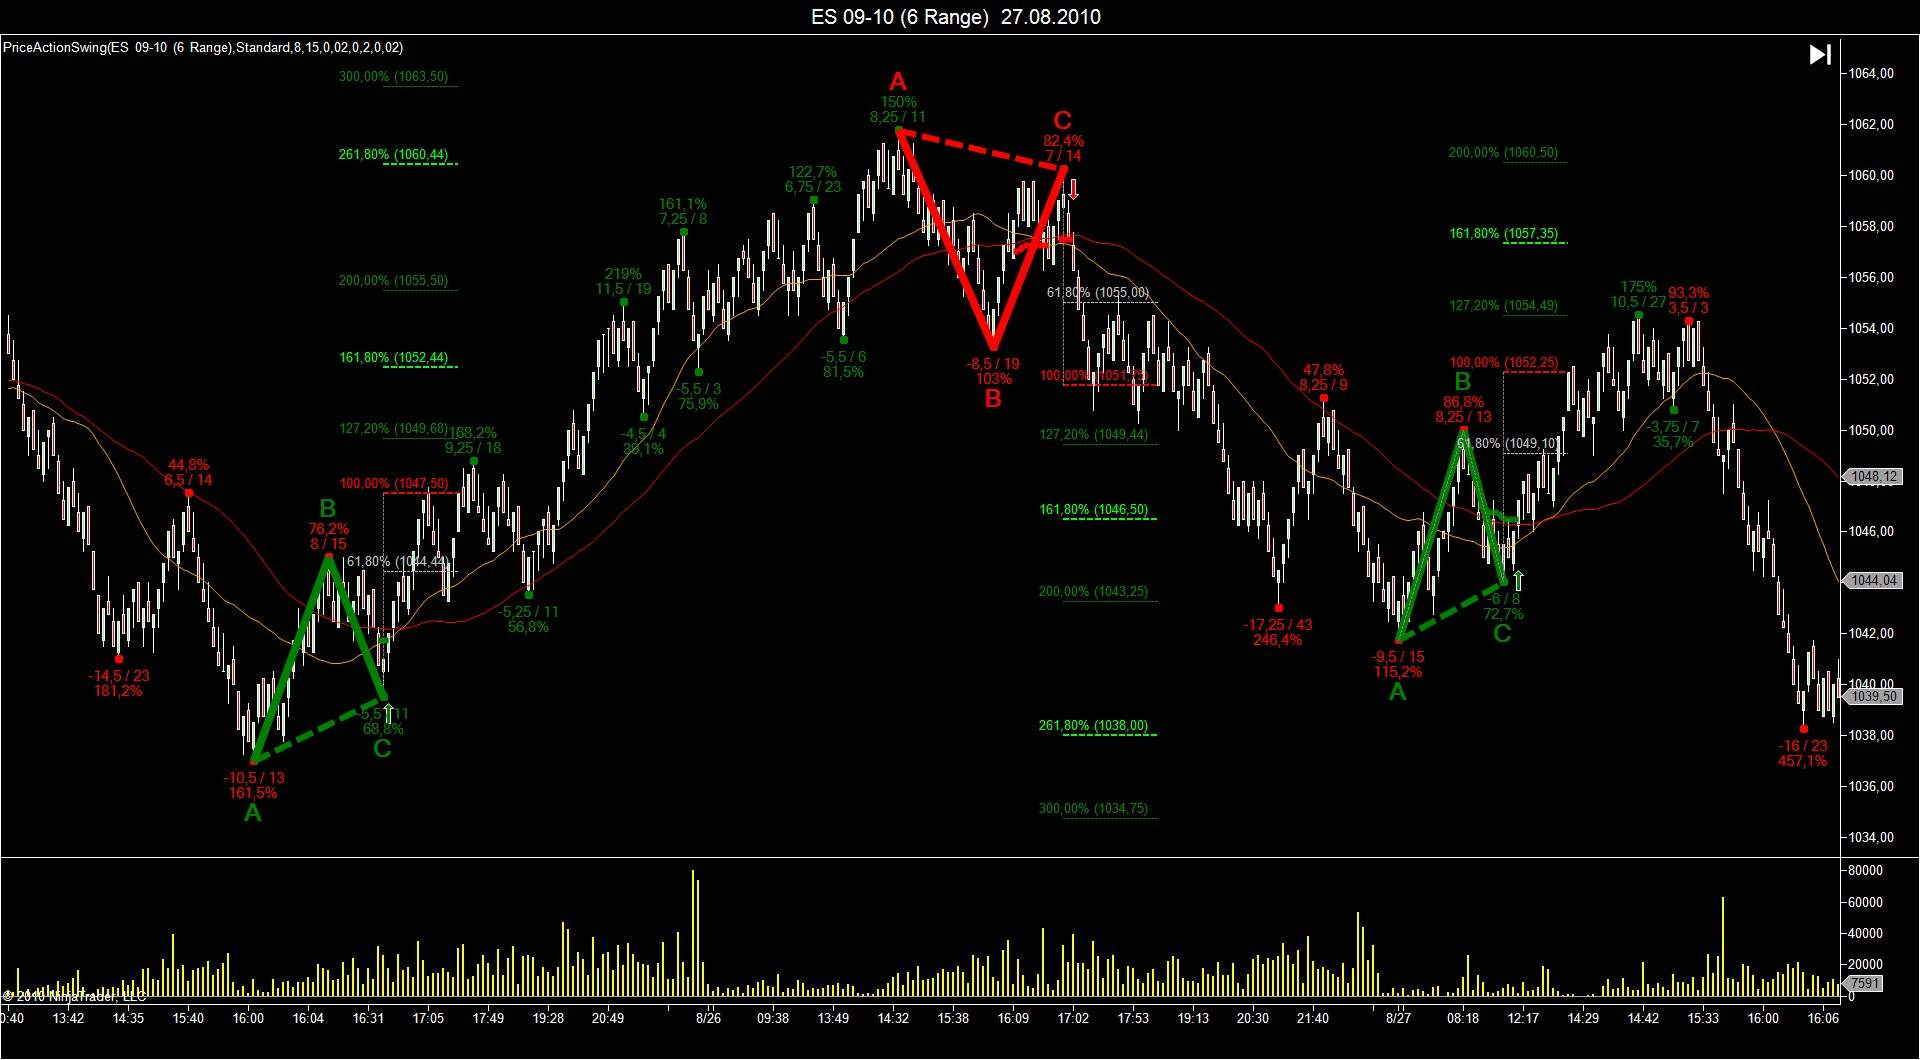 Price Action Swing for NinjaTraderPrice Action Swing for NinjaTrader